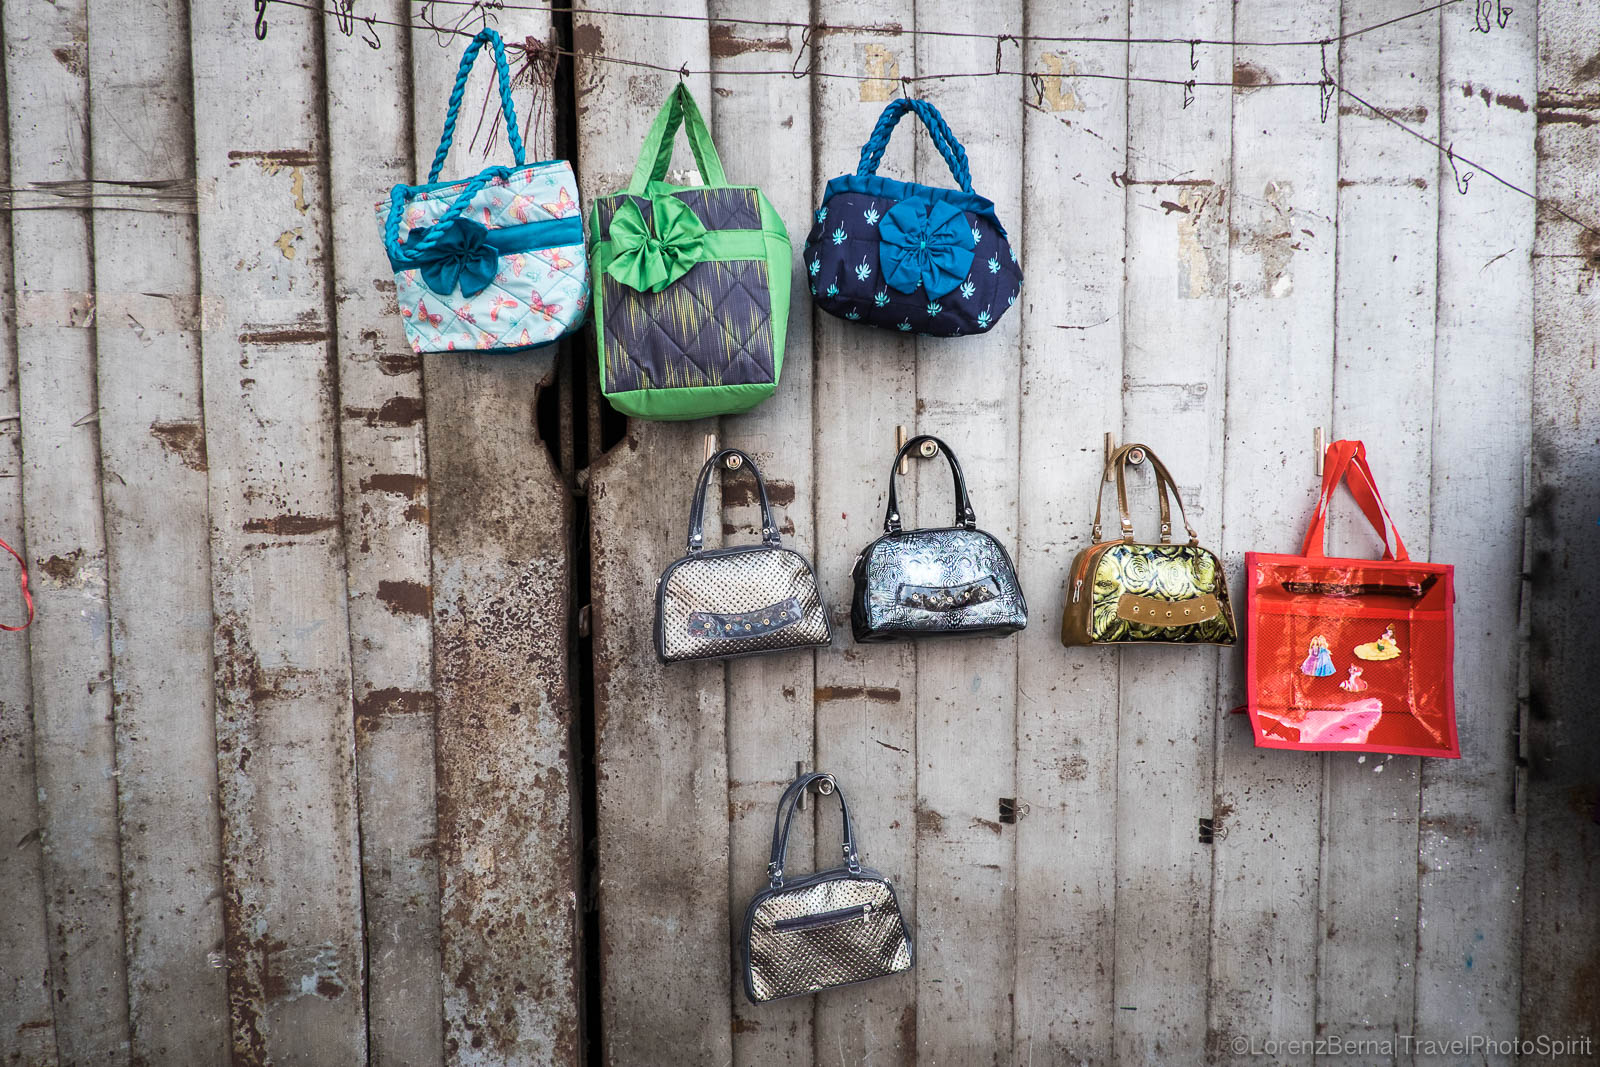 Street stall of women handbags.